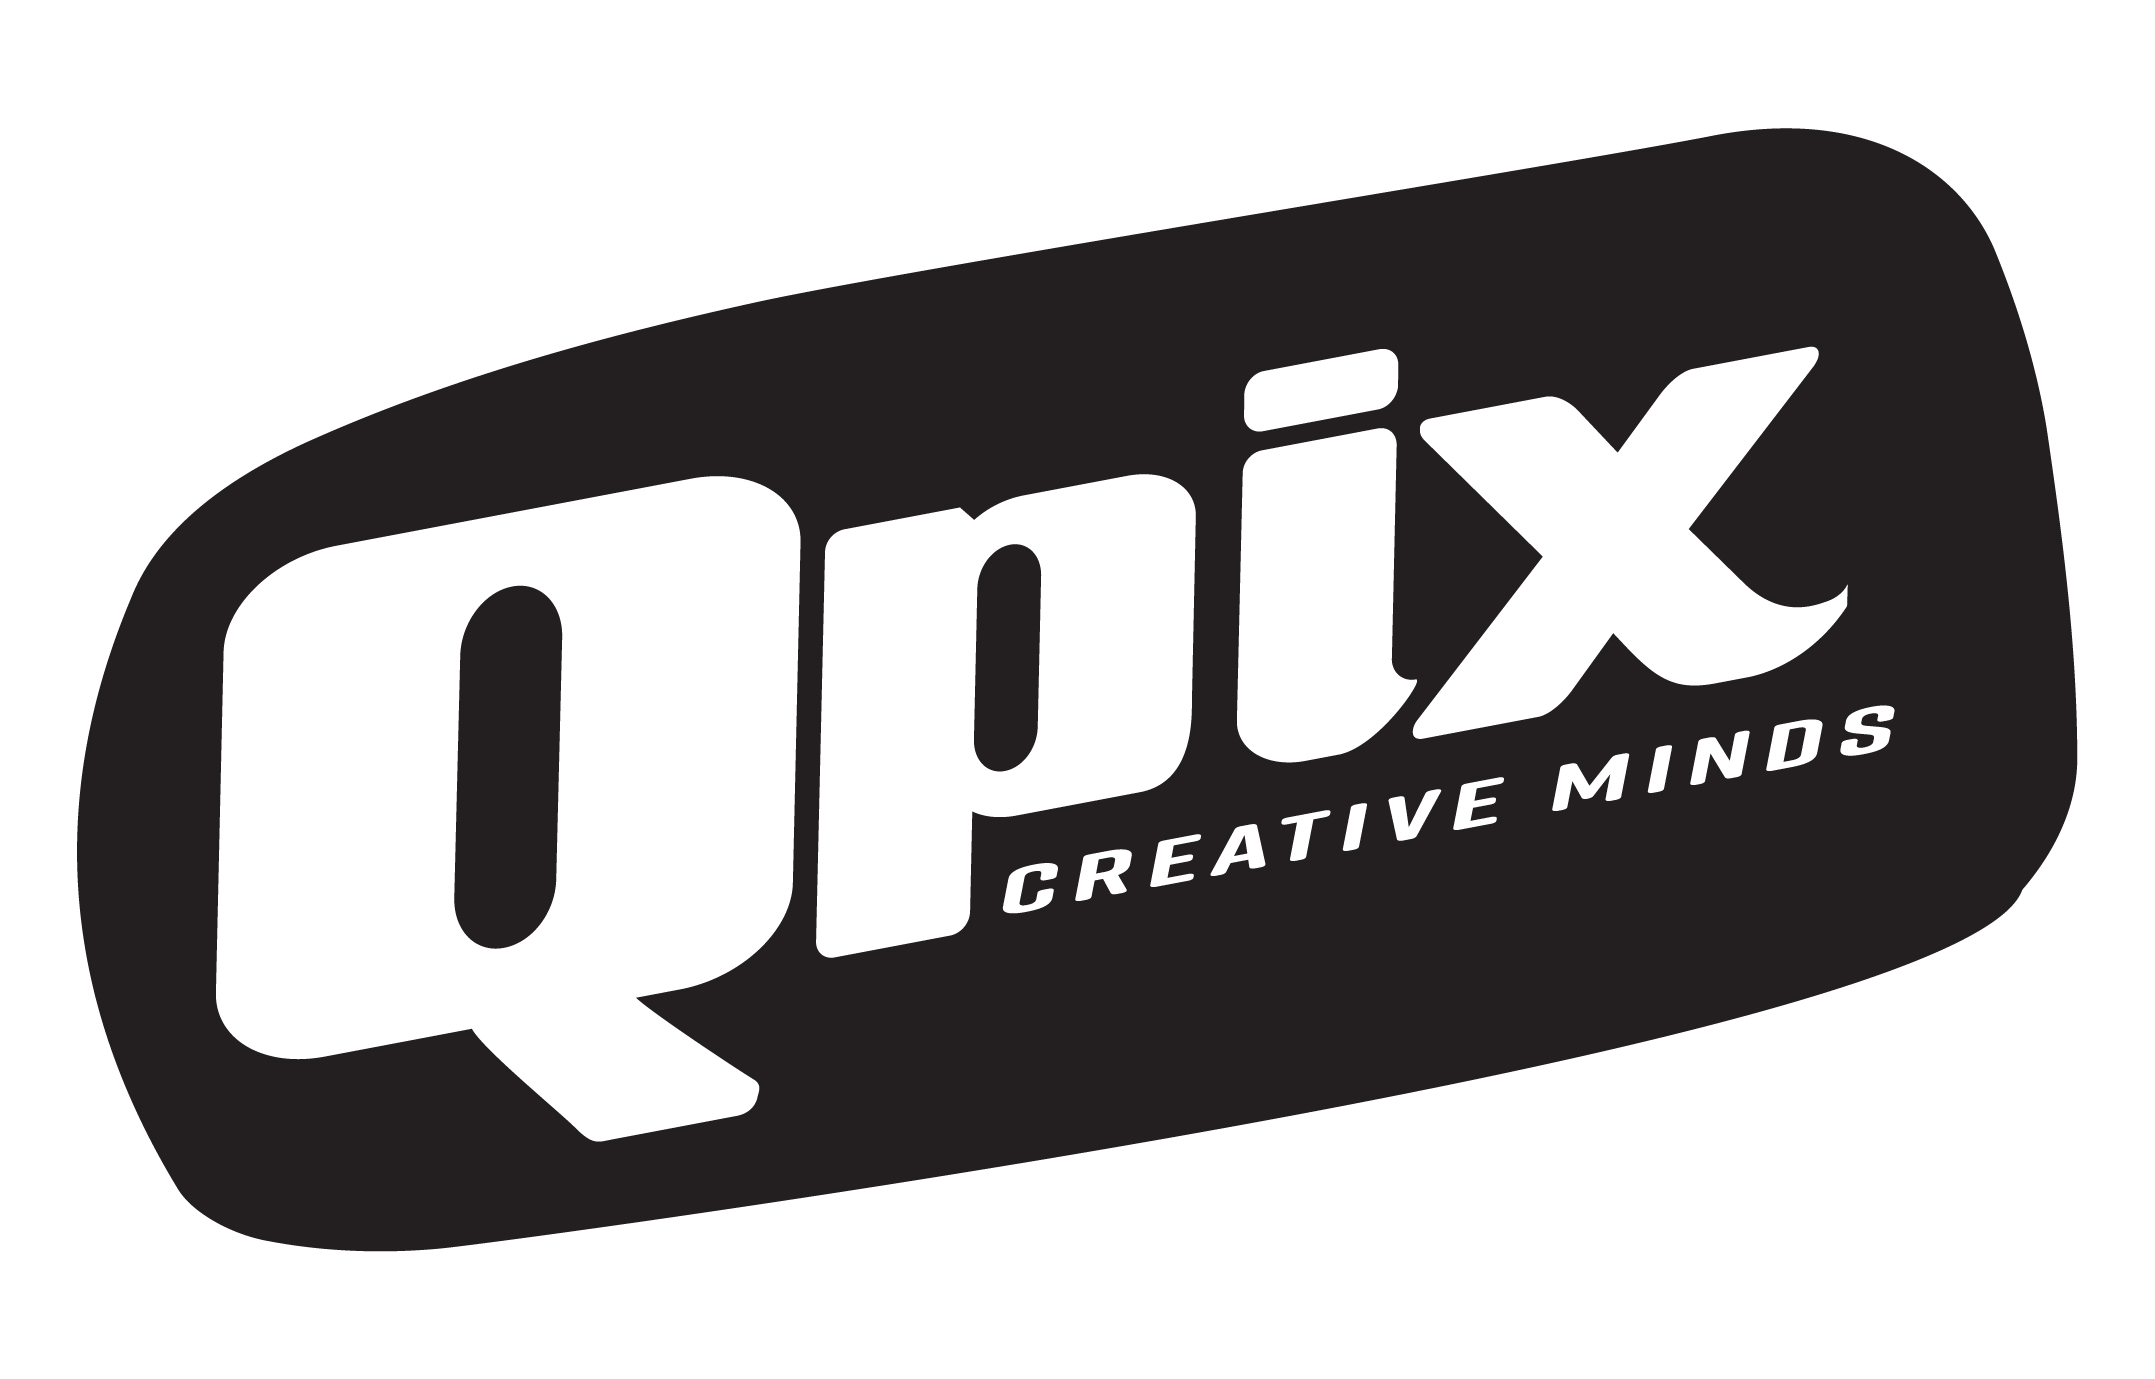 Logotipo Qpix Creative Minds